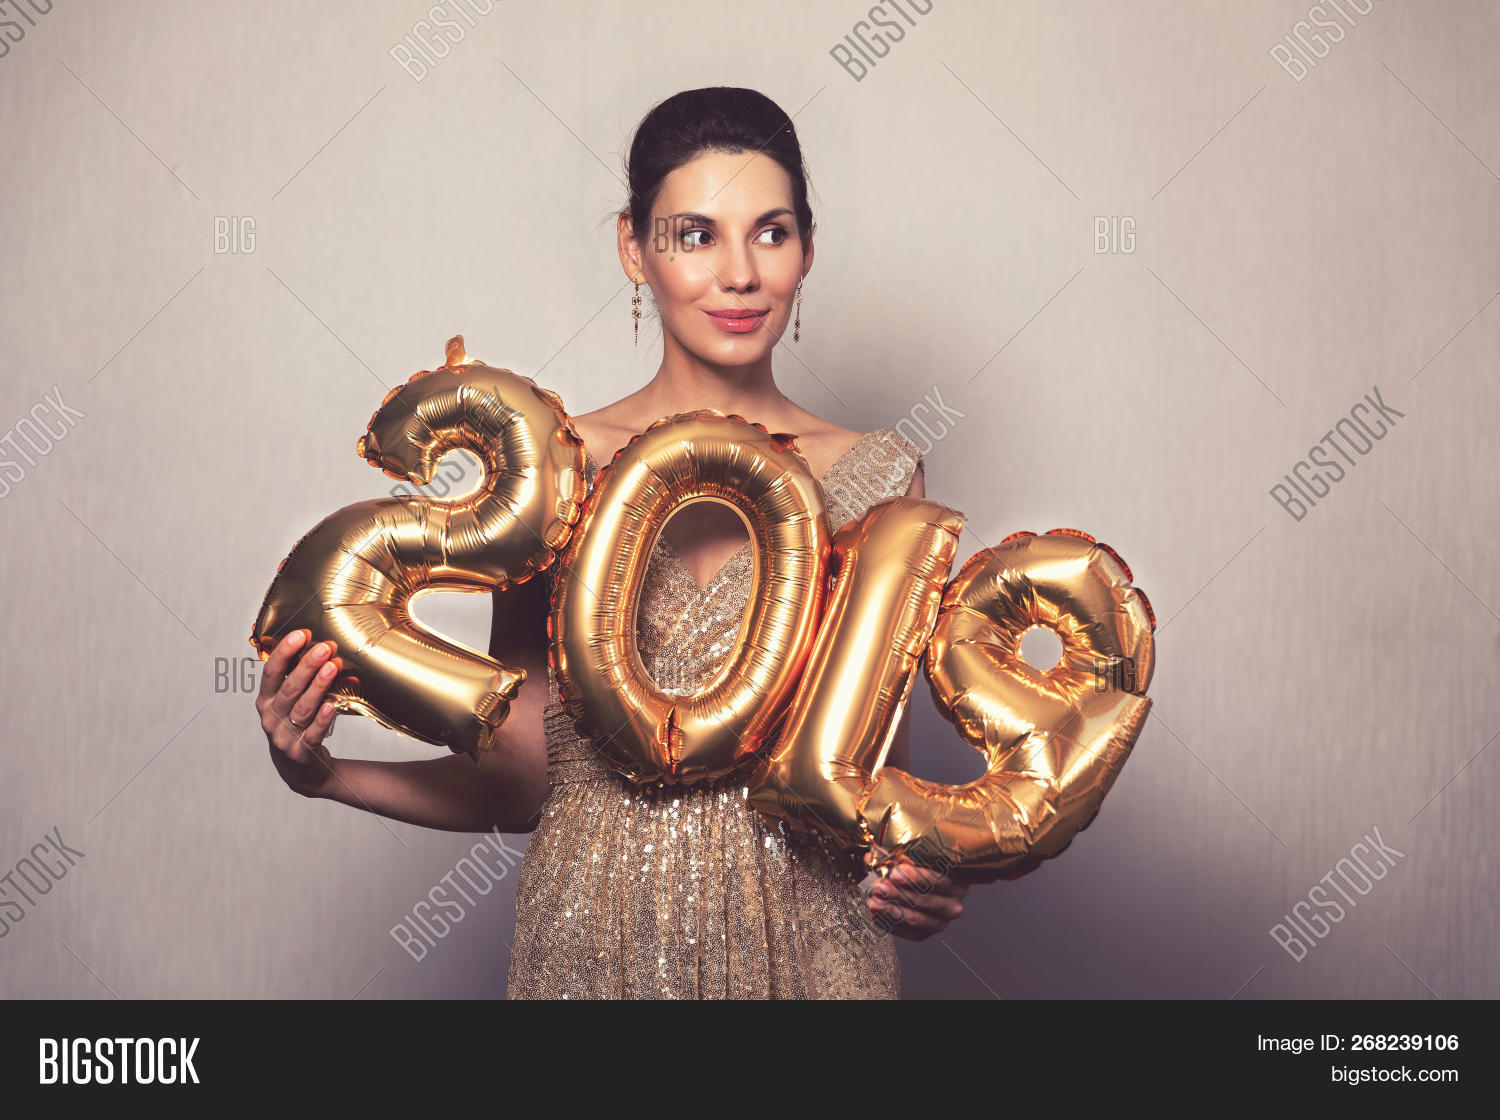 adult,attractive,beautiful,beauty,celebrate,celebrating,celebration,cheerful,christmas,confetti,dress,elegant,emotion,enjoy,eve,event,fashion,fashionable,female,festive,fun,girl,glamour,glitter,gold,golden,happiness,happy,holding,holiday,joyful,lifestyle,luxury,new,one,party,people,person,portrait,present,pretty,sexy,smile,smiling,style,stylish,woman,women,year,young